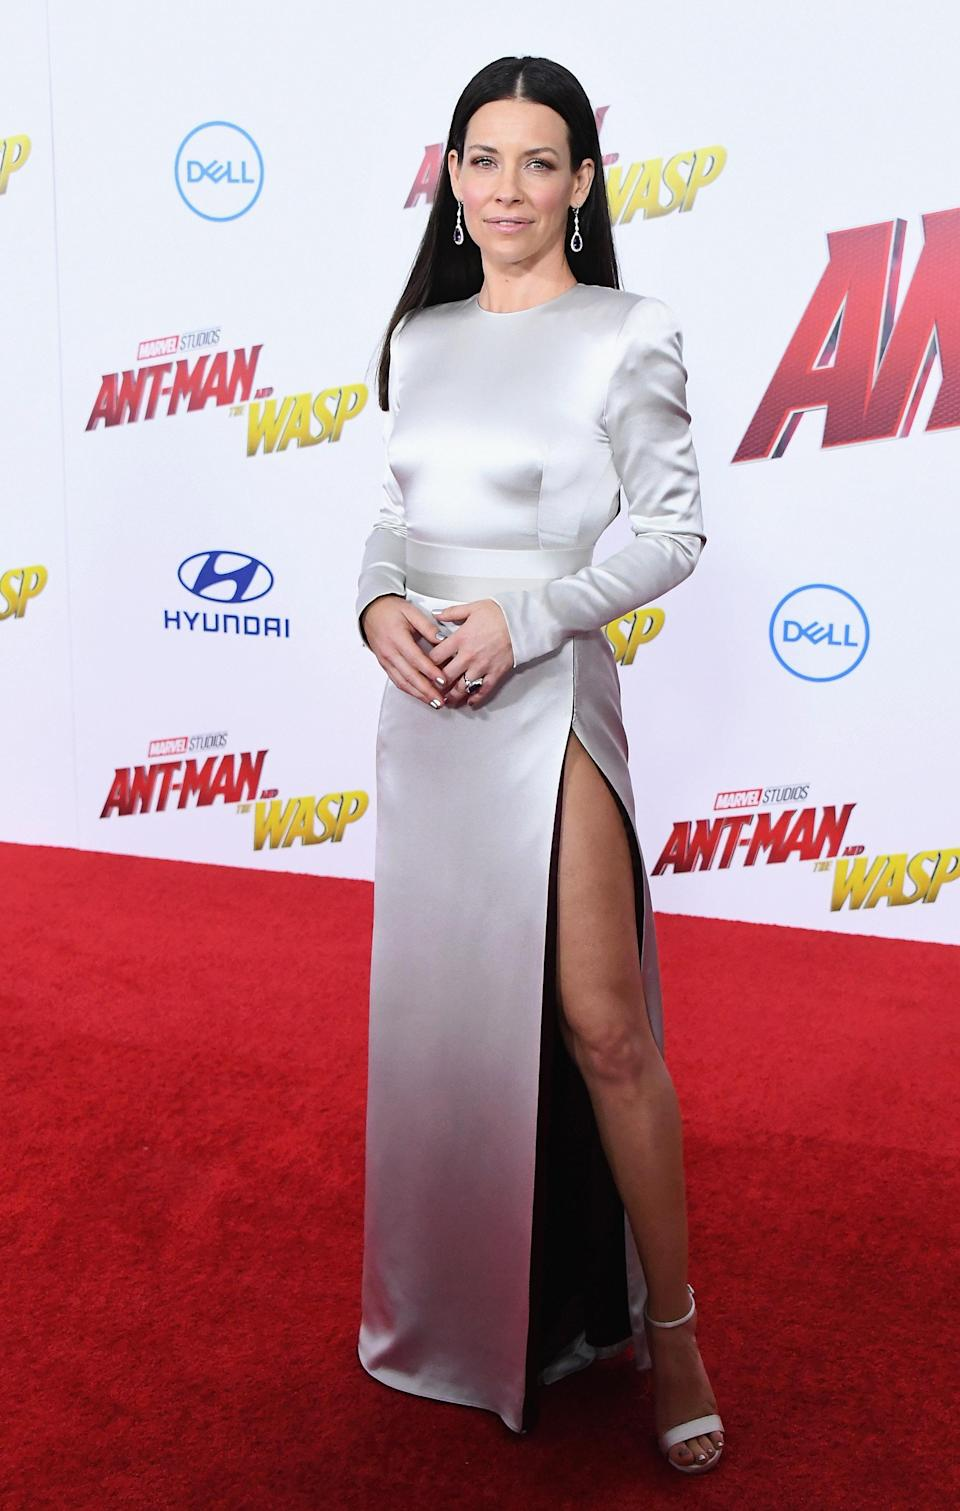 <p>For the premiere of 'Ant-Man and the Wasp' on June 25, actress Evangeline Lilly wore a silky thigh-split dress by August Getty Atelier. She finished the red carpet look with Kallati jewellery. [Photo: Getty] </p>